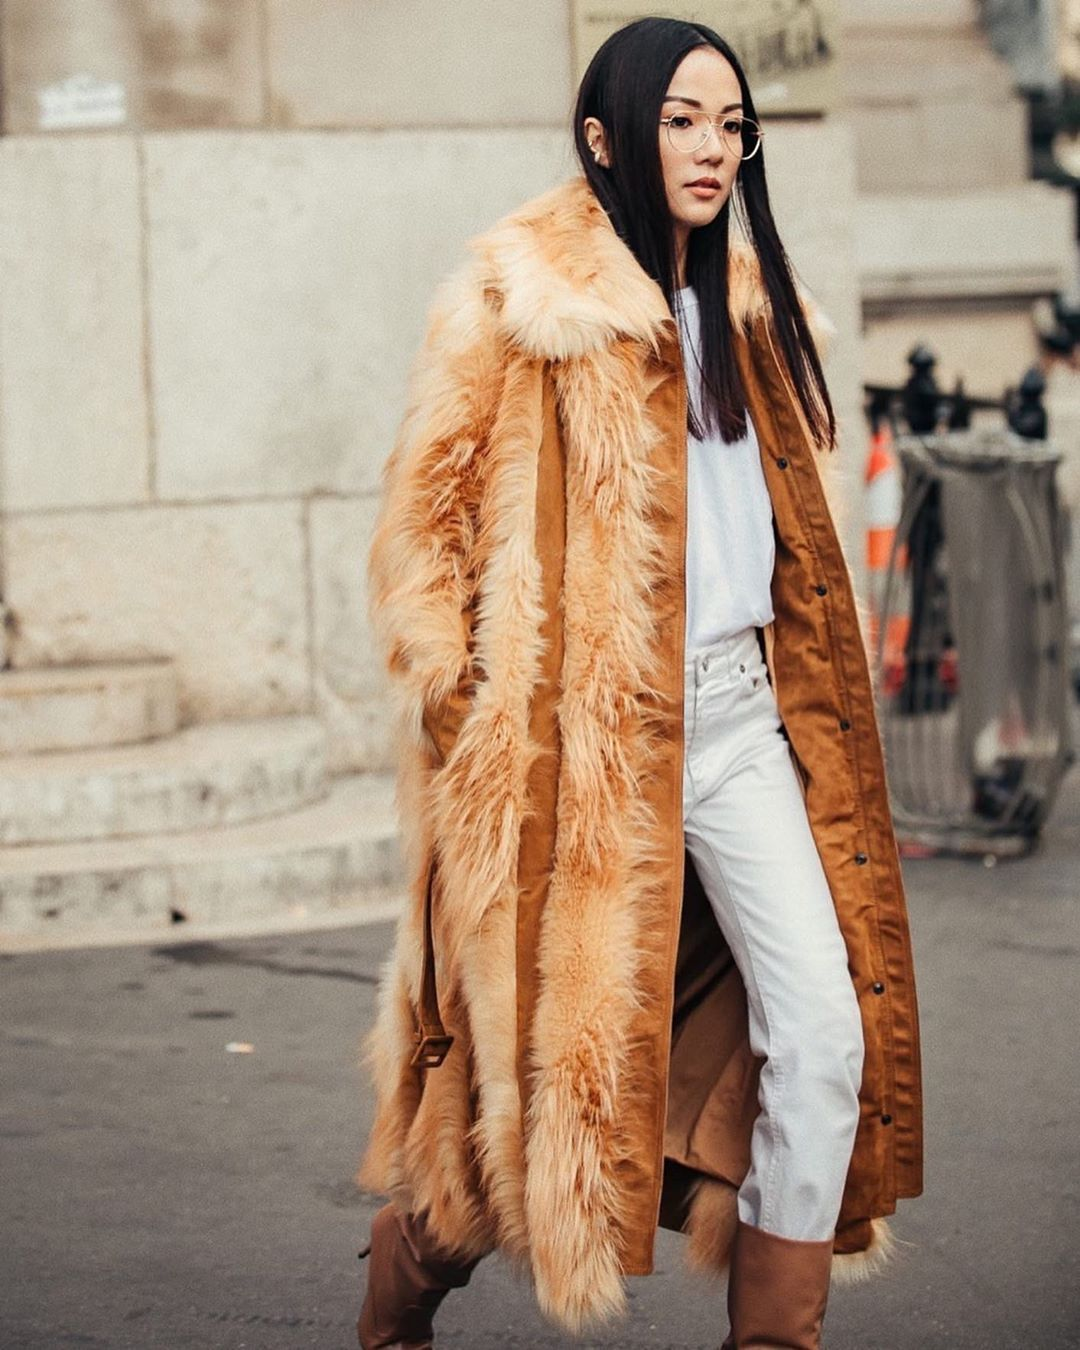 yoyo-cao-white-jeans-stella-mccartney-faux-fur-coat-outfit